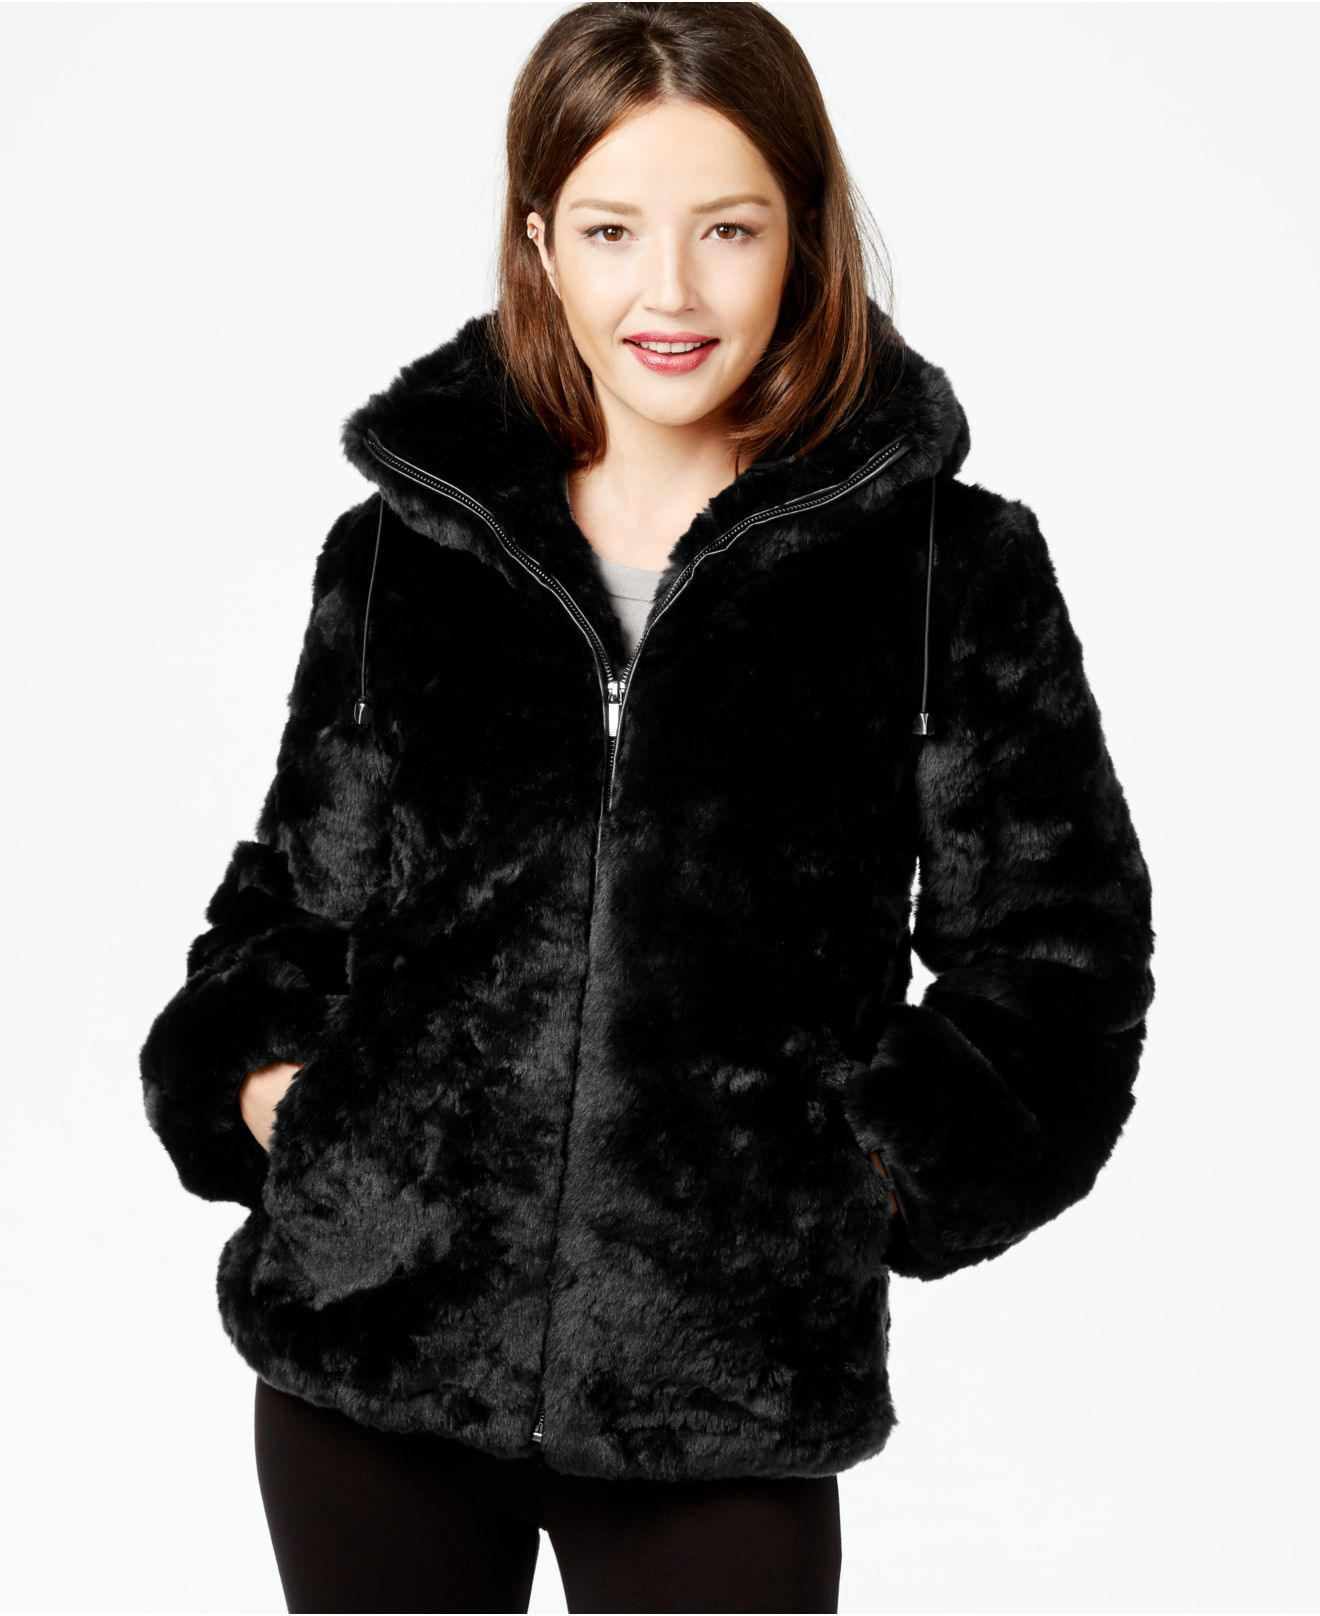 ASOS DESIGN Plus parka jacket with faux fur trim in black. $ Bellfield Plus parka with faux fur hood in black. $ Sixth June parka coat in black with taping detail. Farah Beattie hooded faux fur parka coat in navy. $ Selected Homme Parka With Drawstring Waist. $ Selected Homme Parka With Drawstring Waist.